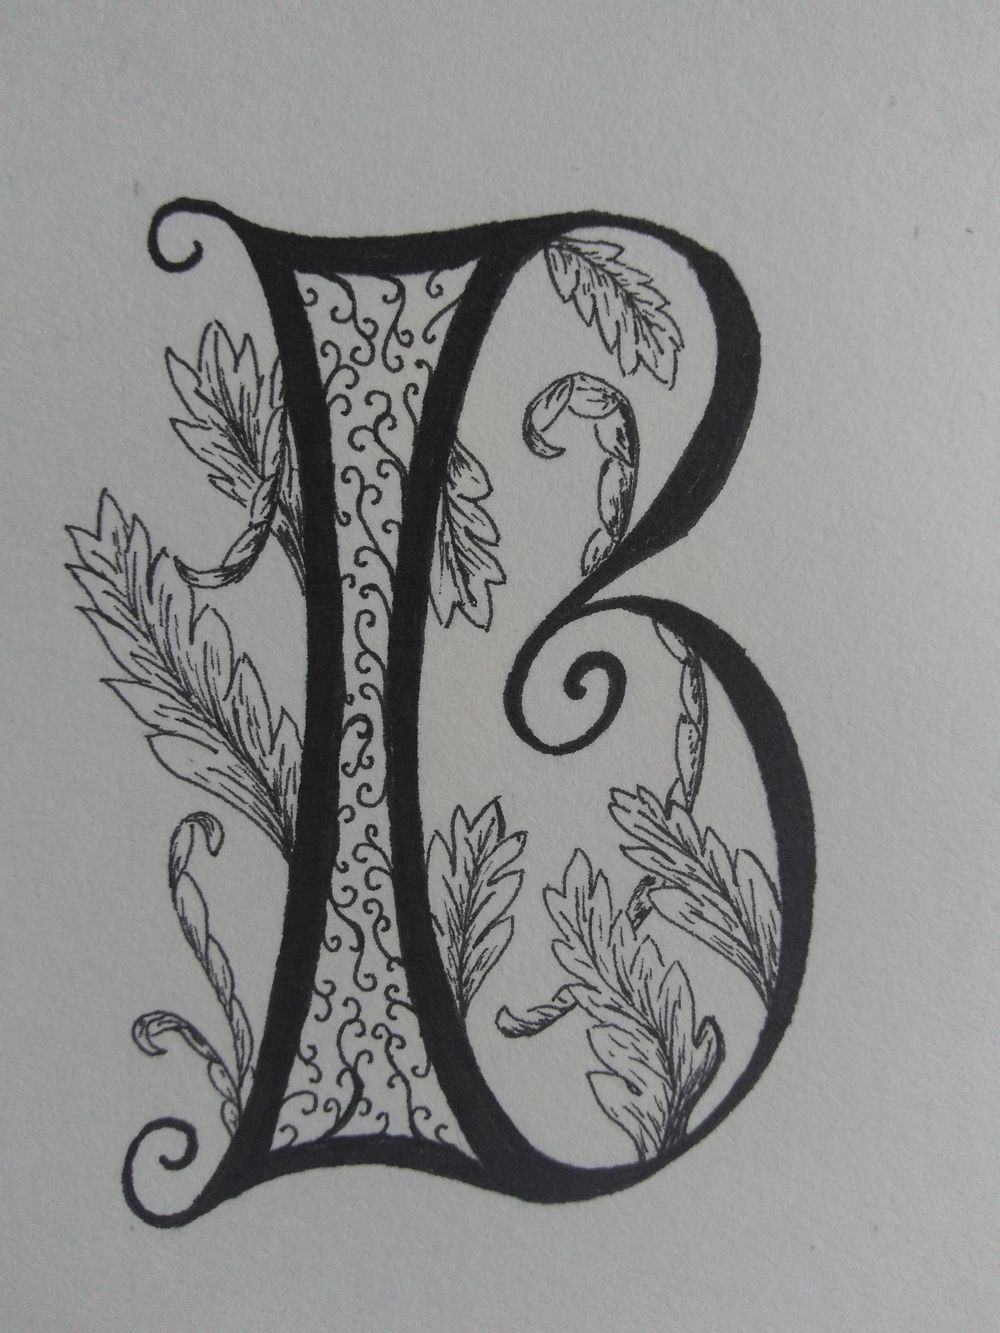 Ornamented Capitals with acanthus - image 2 - student project